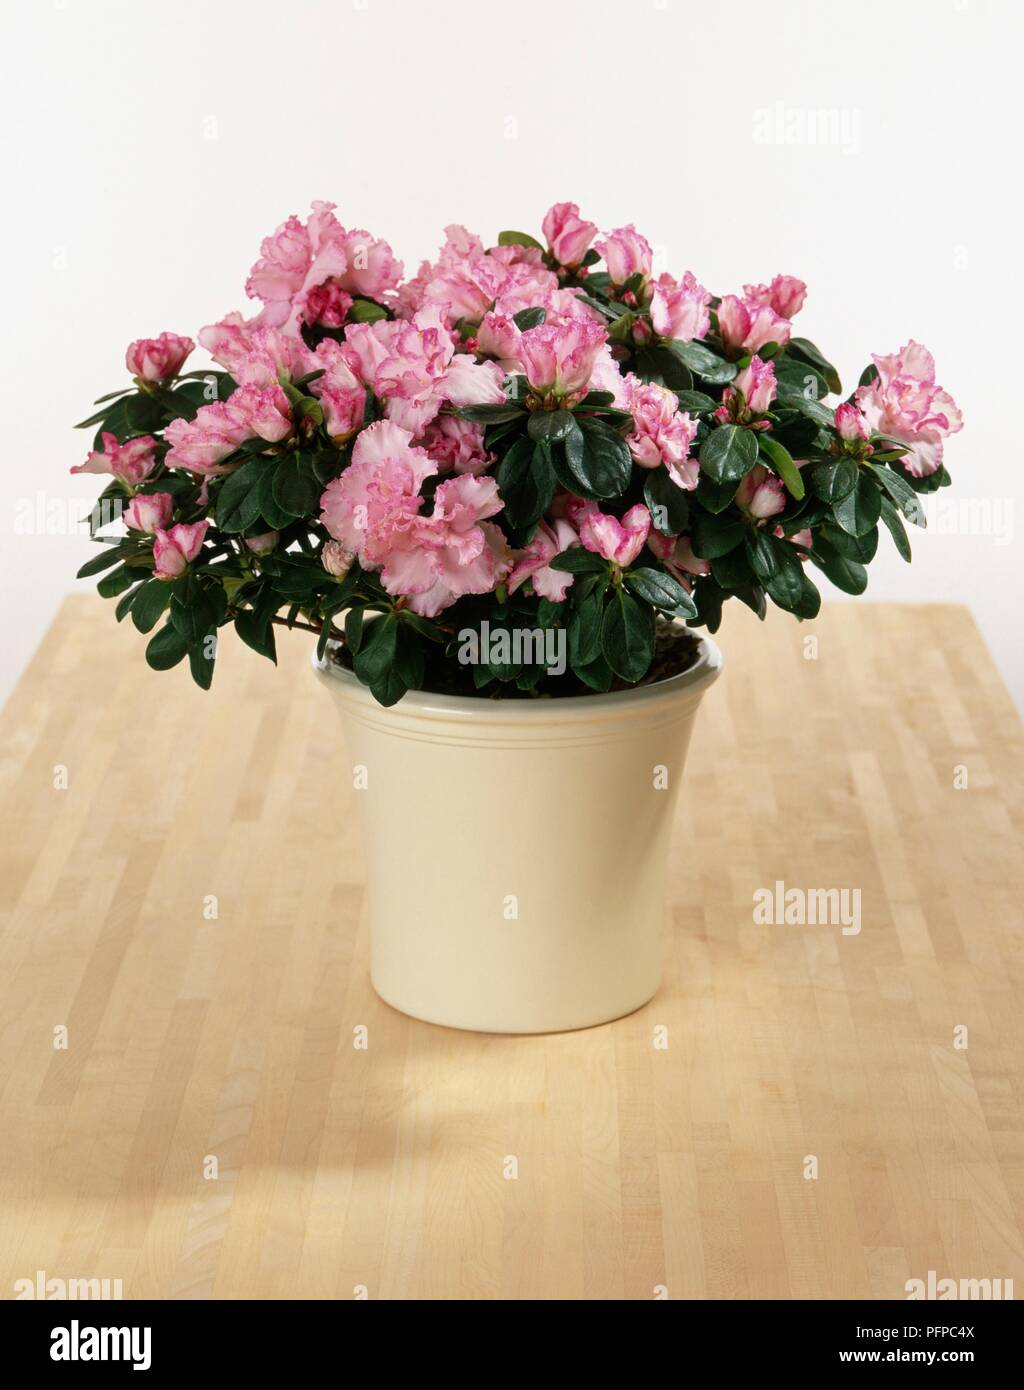 Rhododendron Simsii Azalea With Pink Blossom In Ceramic Plant Pot